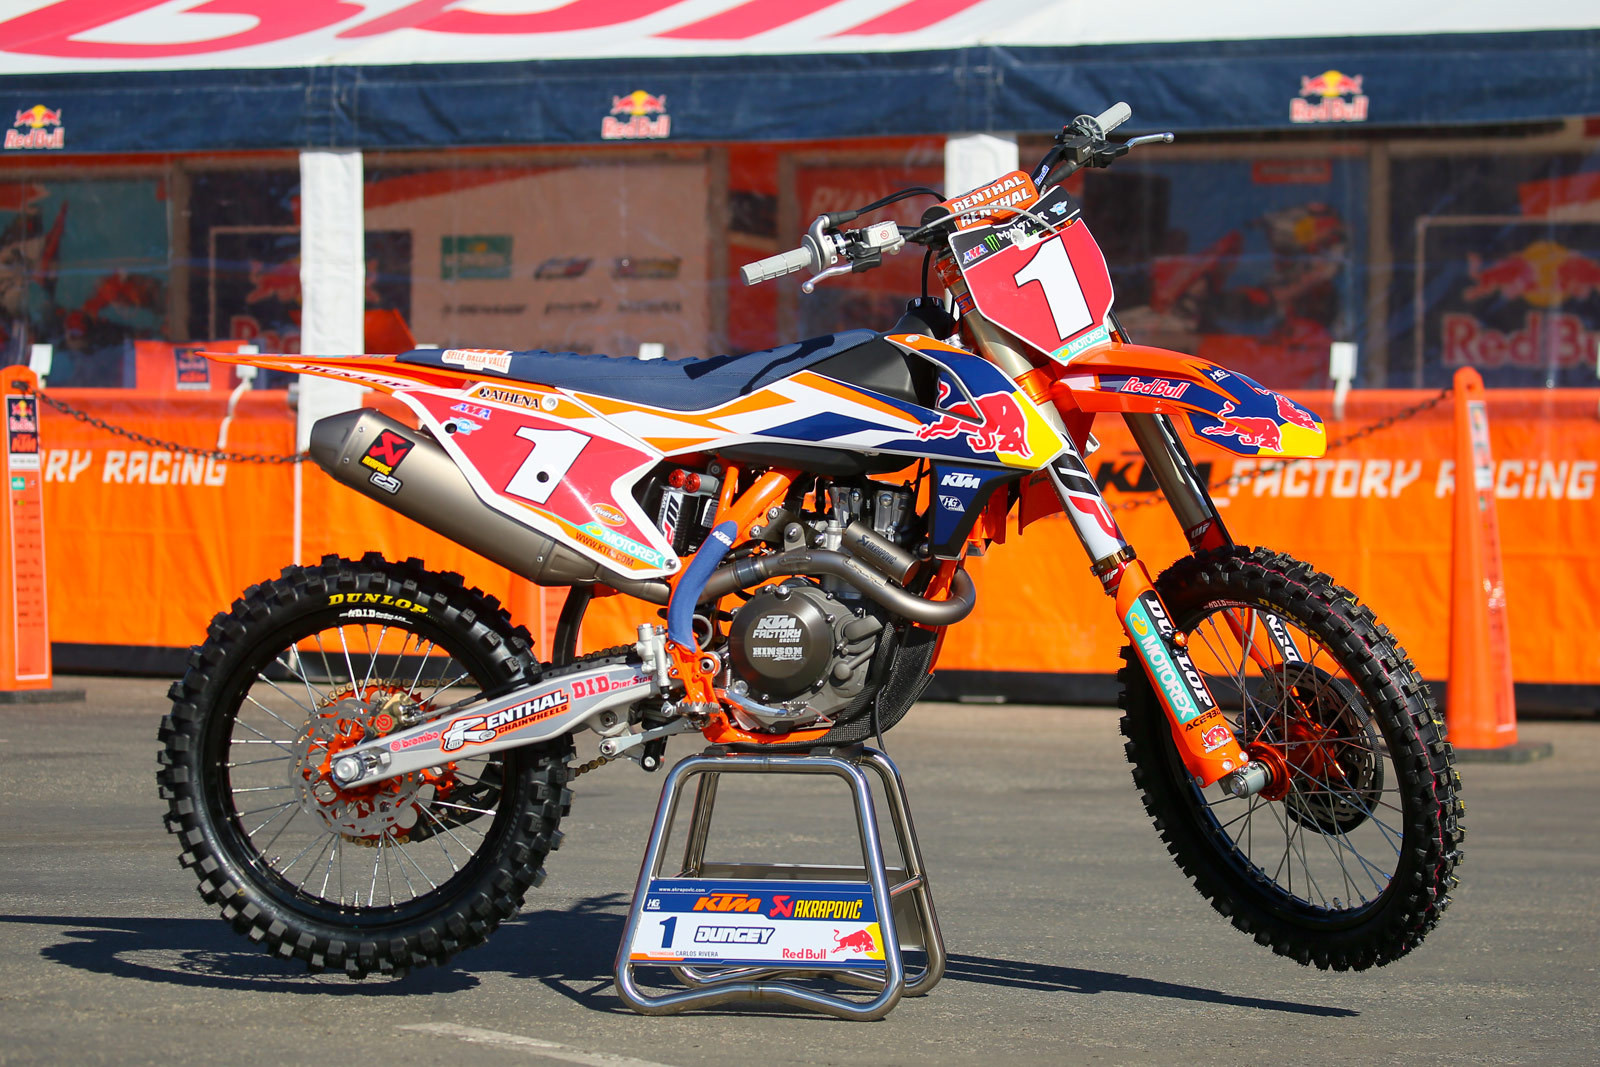 Ryan Dungey - 2016 Bikes of Supercross - Motocross Pictures - Vital MX